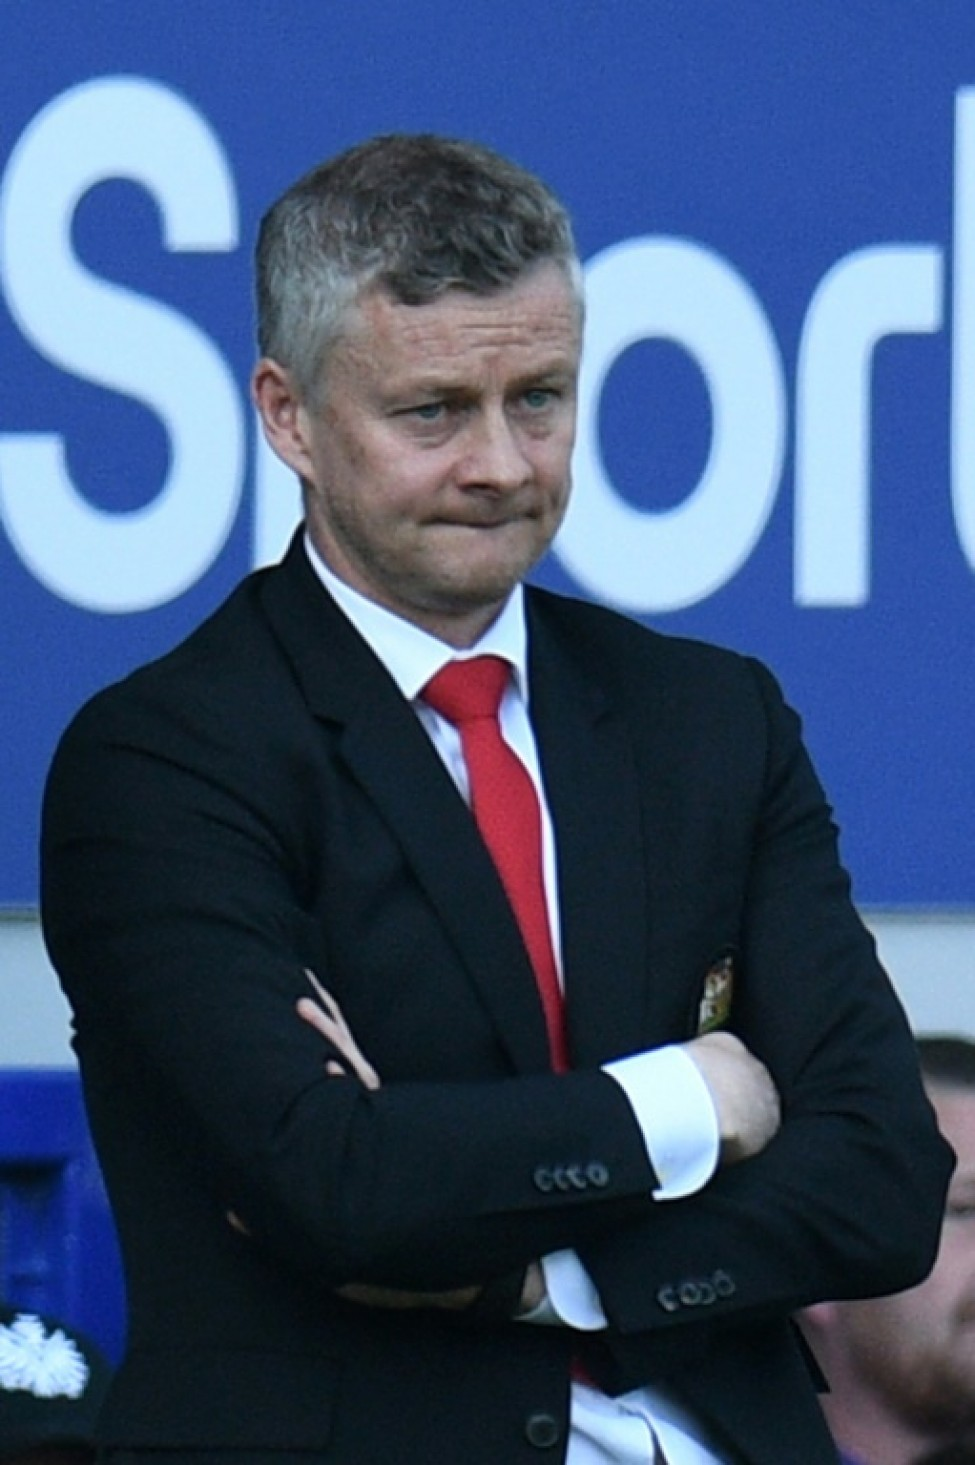 Ole Gunnar Solskjaer witnessed Manchester United\'s heaviest defeat to Everton in 35 years